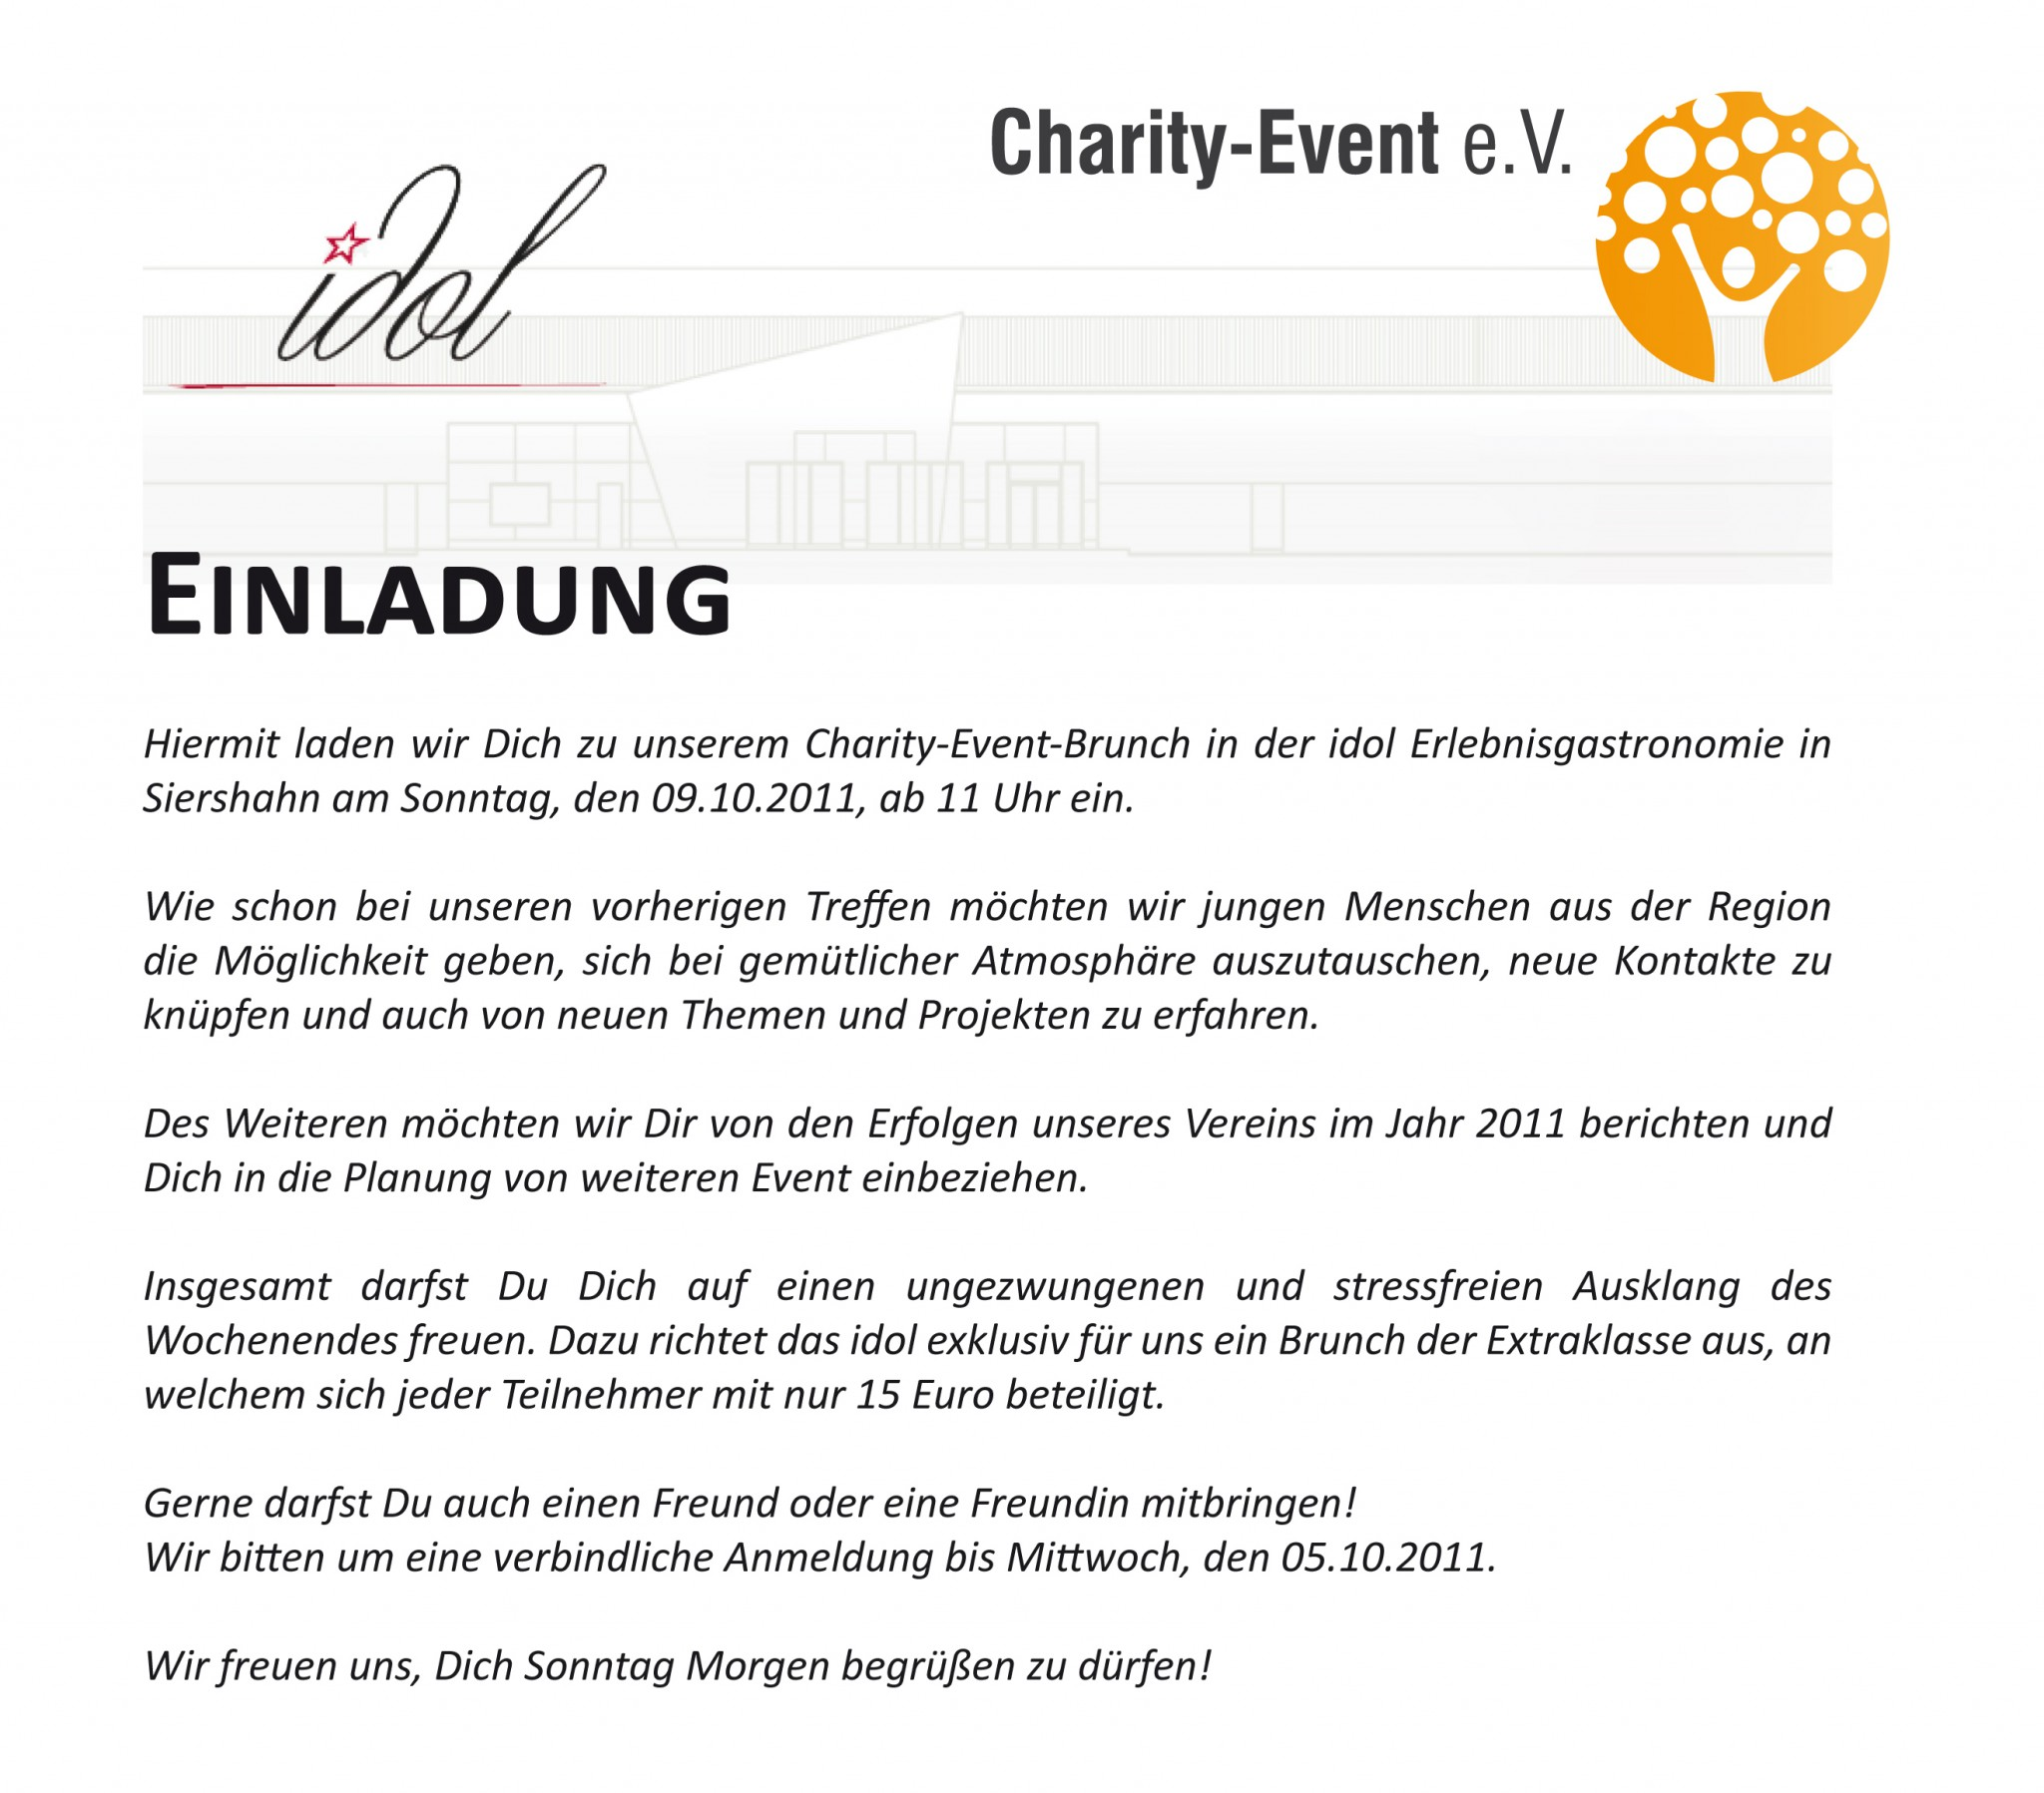 Charity-Brunch - Charity-Event e.V.